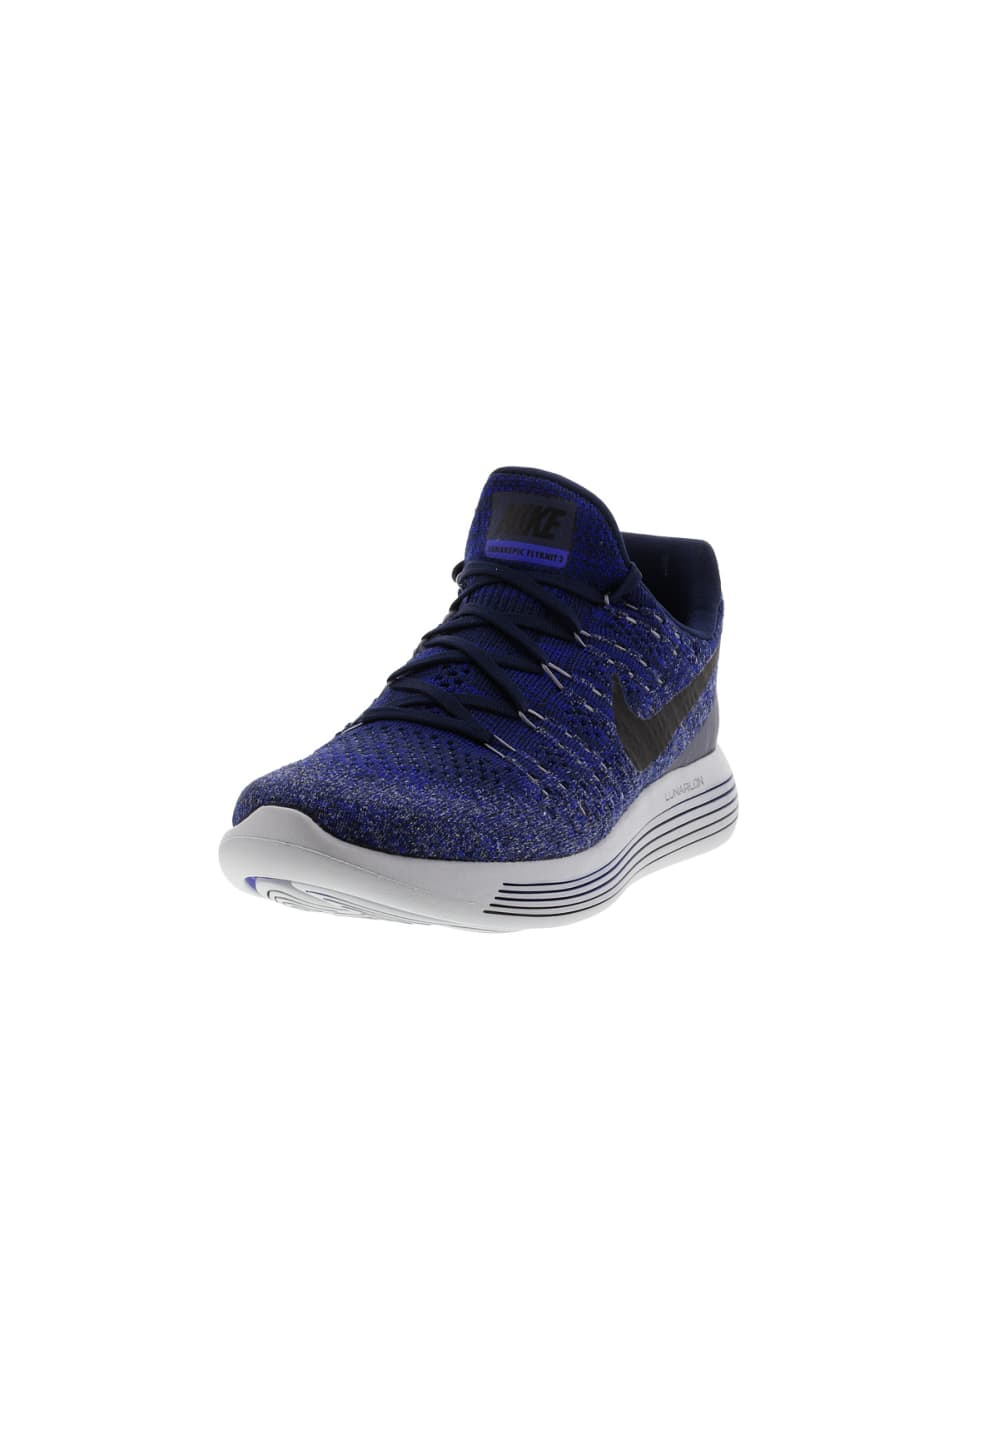 sports shoes b5aef f7a46 Nike LunarEpic Low Flyknit 2 - Running shoes for Men - Blue